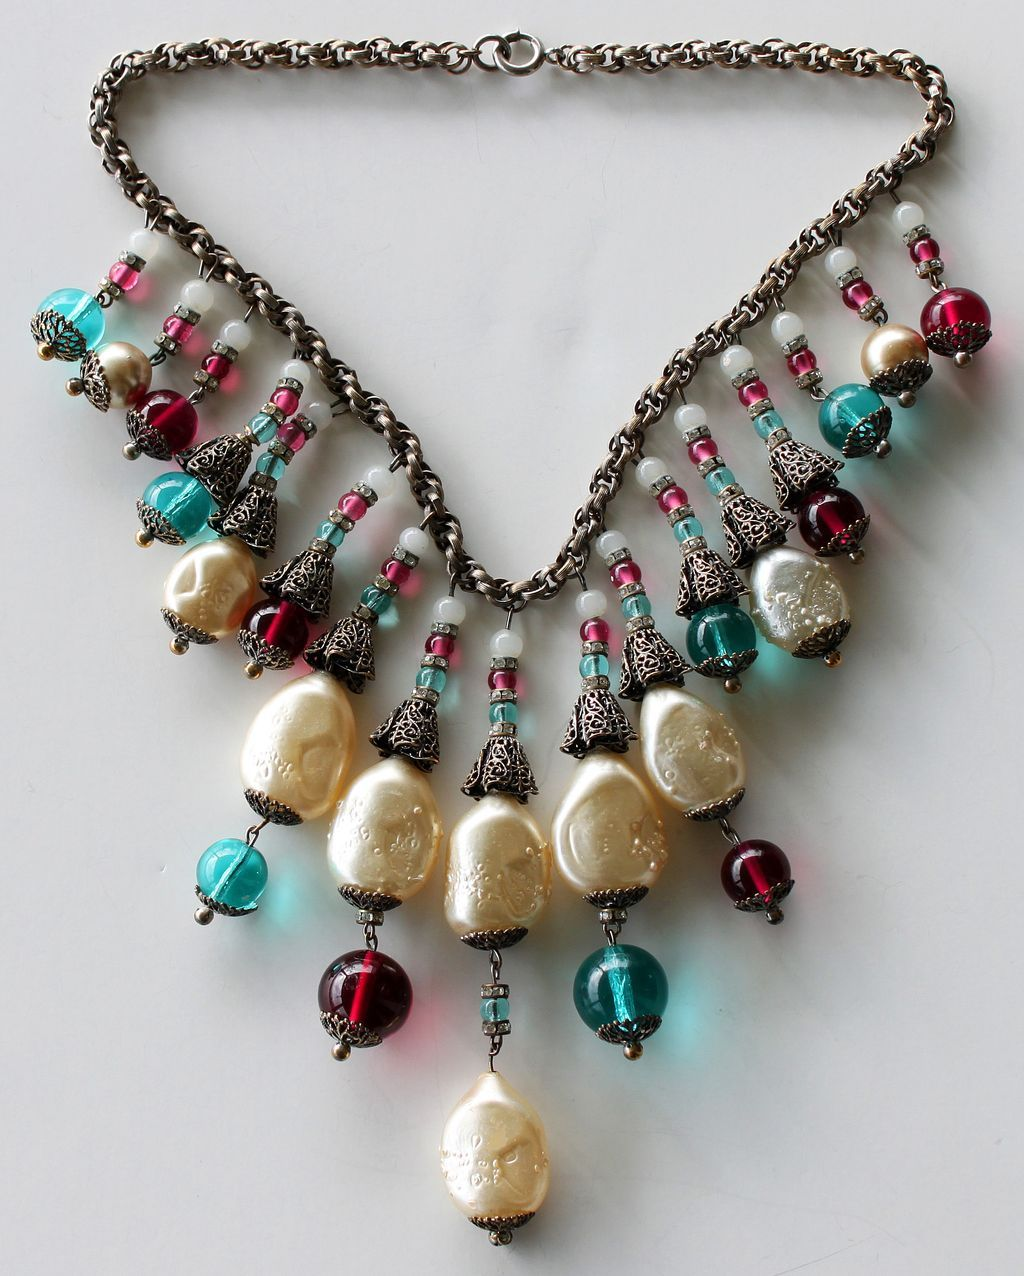 Rare Vintage Miriam Haskell Pearl & Glass Necklace